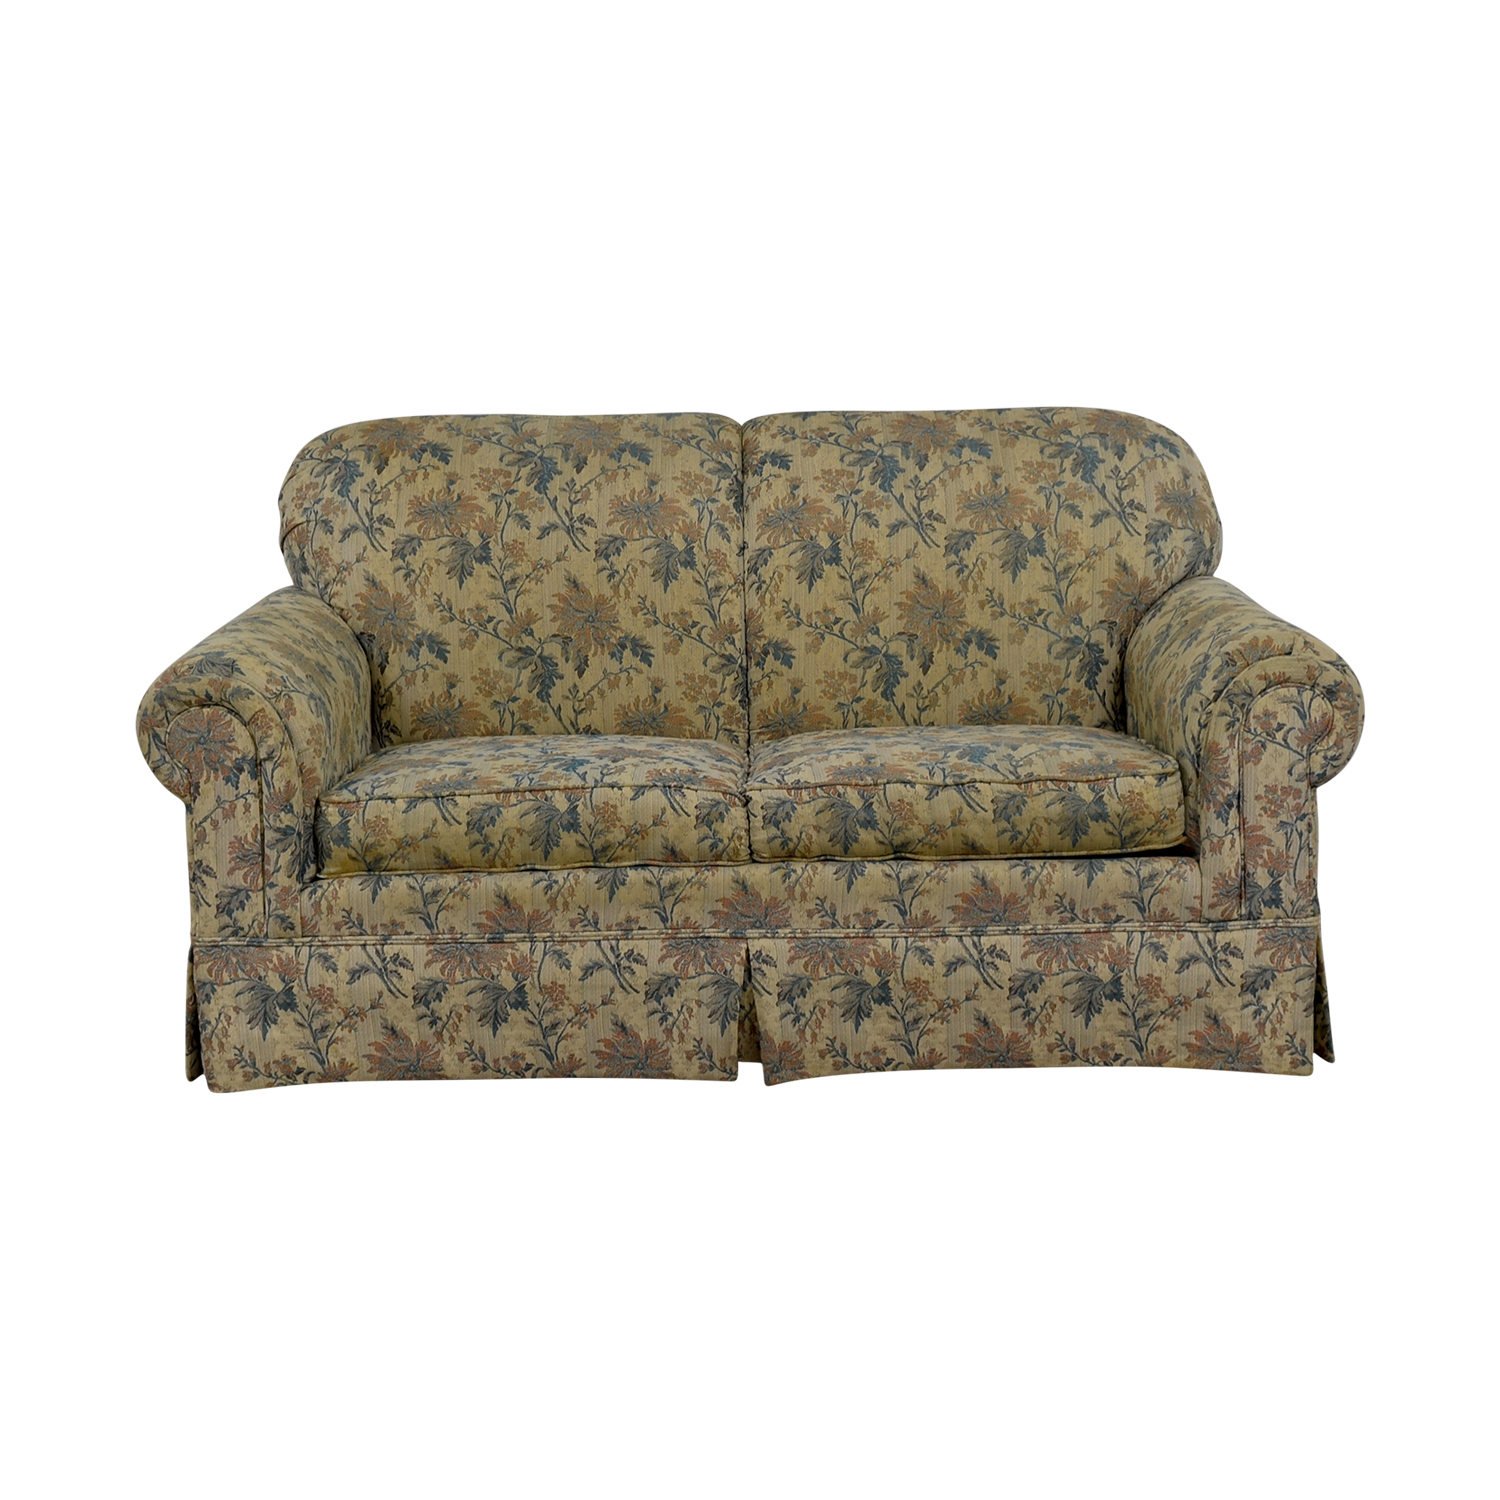 Prime 90 Off Broyhill Furniture Broyhill Upholstery Furniture Yellow Flower Fabric Loveseat Sofas Ibusinesslaw Wood Chair Design Ideas Ibusinesslaworg